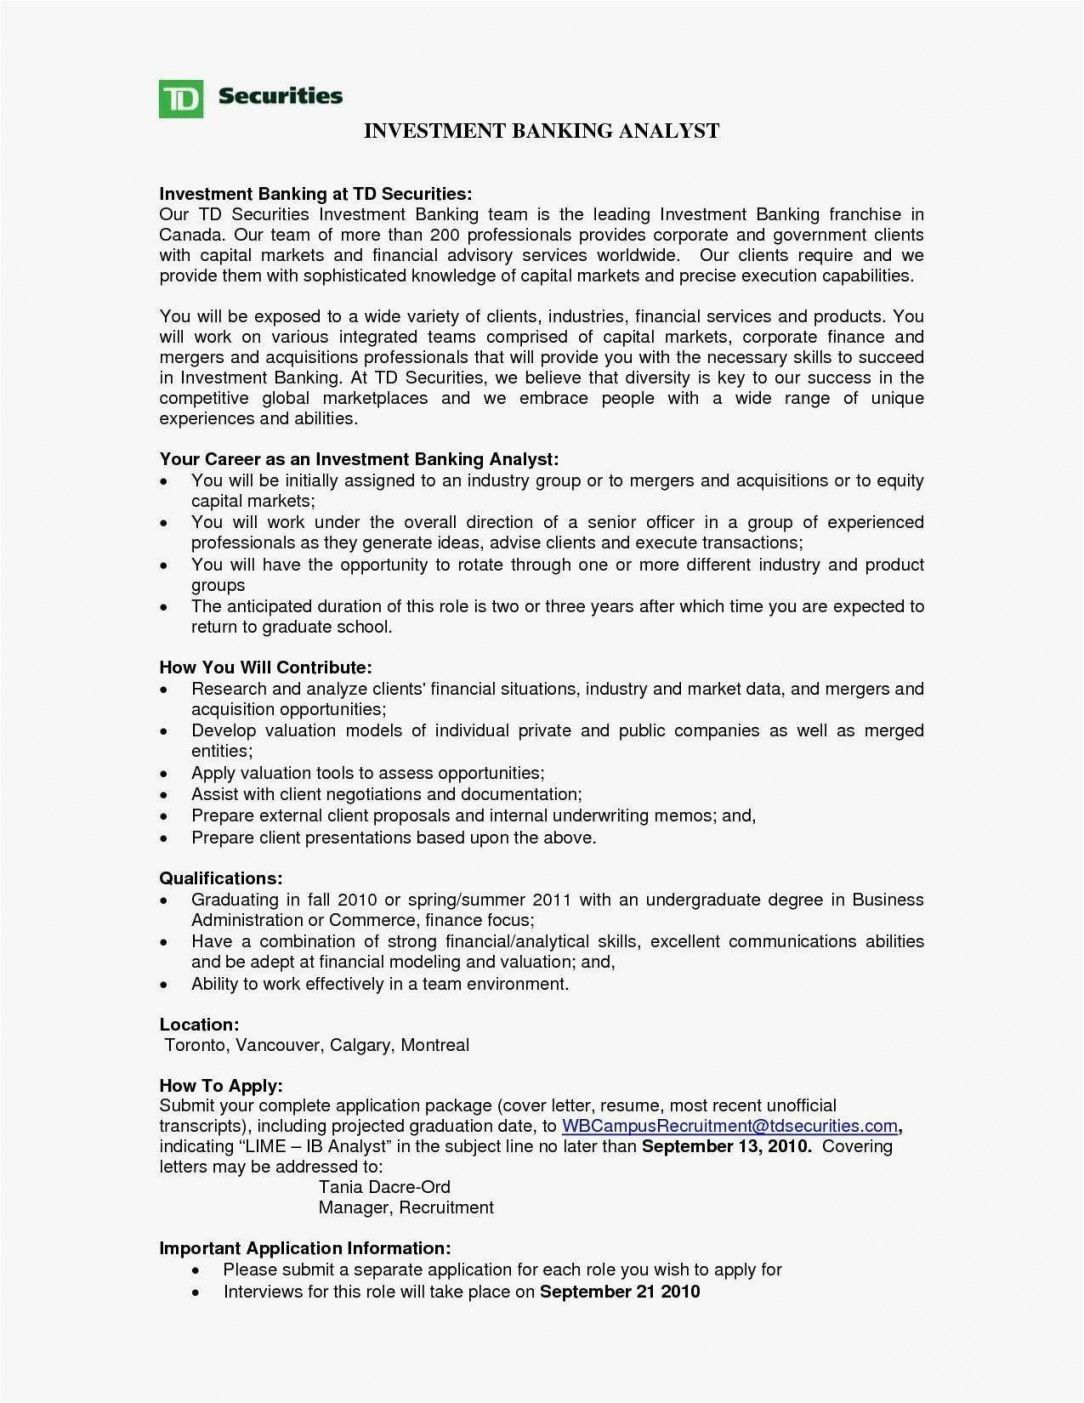 printable 27+ cover letter investment banking resume cover